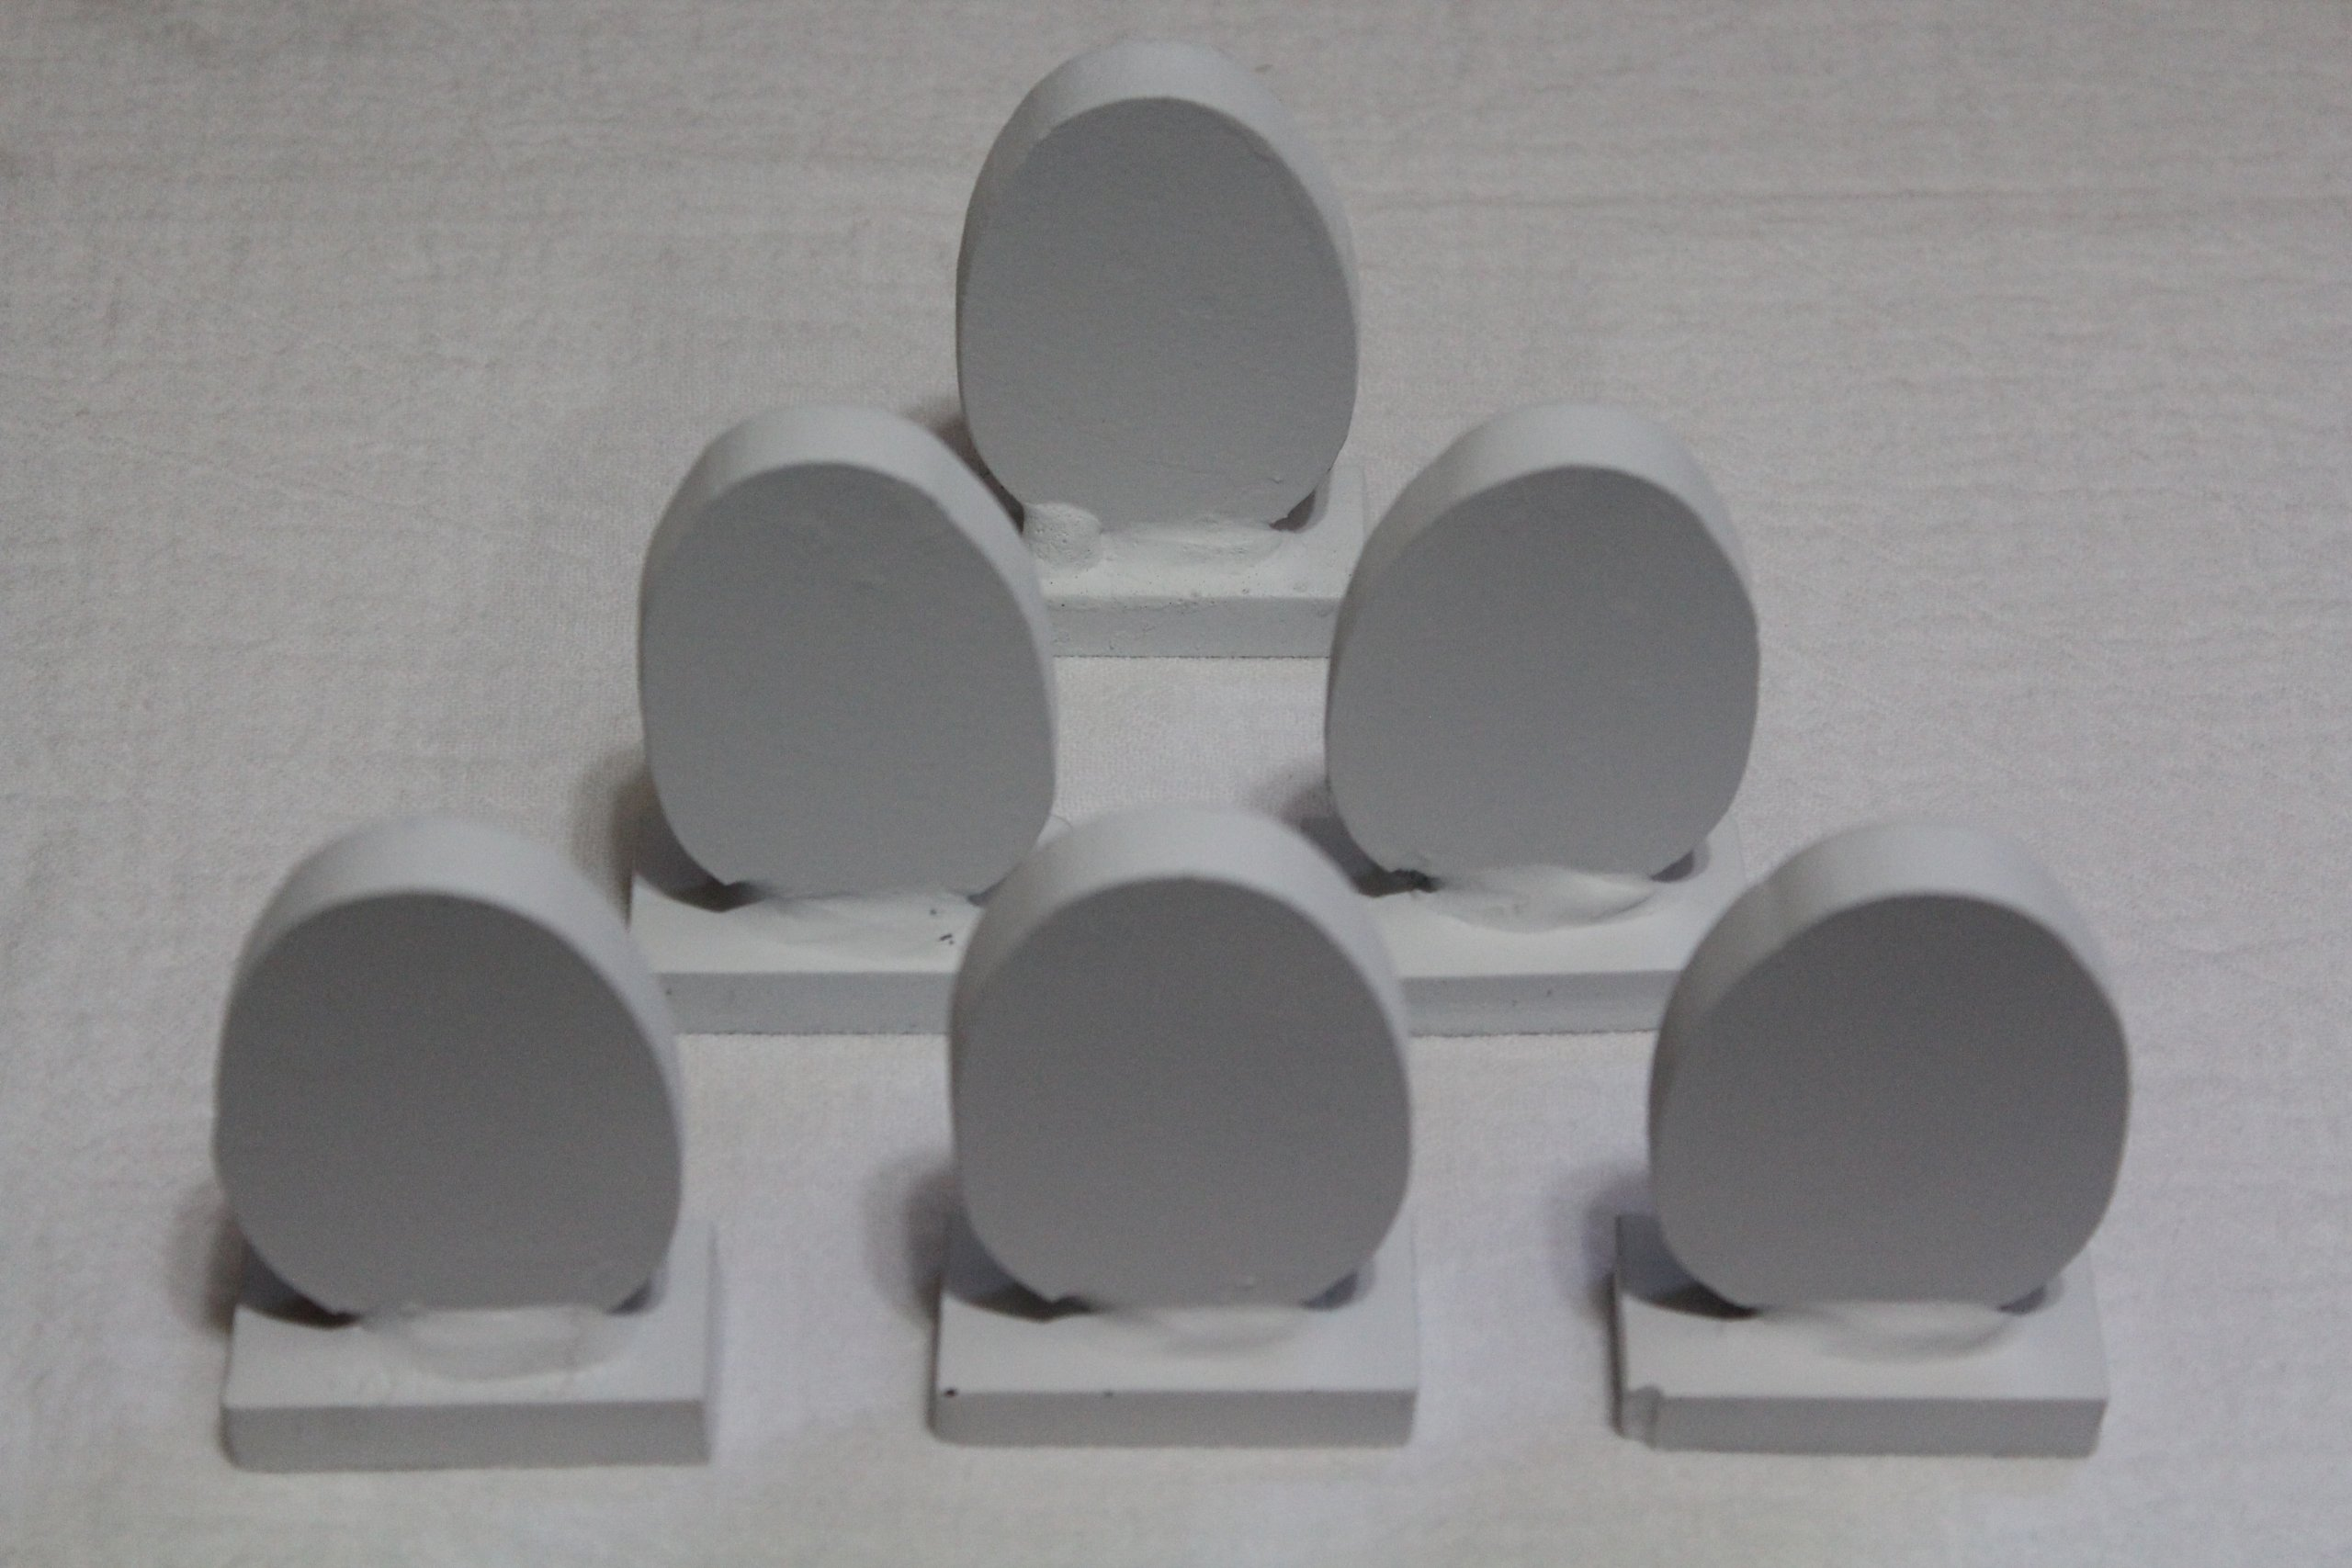 Steel Eggs KNOCKOVER Targets by Quality Targets